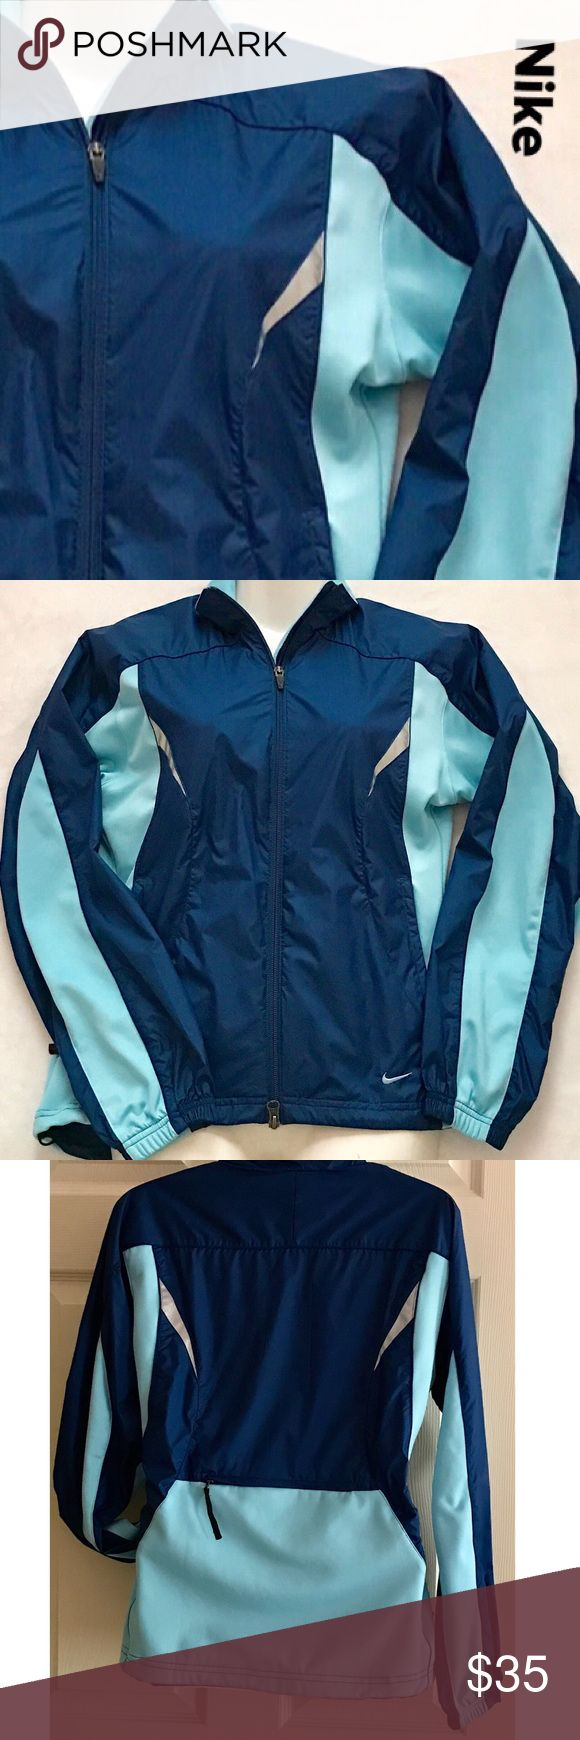 🎀NIKE WOMEN'S WINDBREAKER JACKET 🎀 The perfect Nike jacket for the spring. You cans wear it  to do your outdoor workout, will keep you warm and cozy or just to do errands. This light jacket will keep you in style. Featuring front zipper closure, two side pockets with zipper to secured your belongings. Also have a back pocket with a zipper too, perfect for small wallets, credit cards, keys. Nike Jackets & Coats Utility Jackets